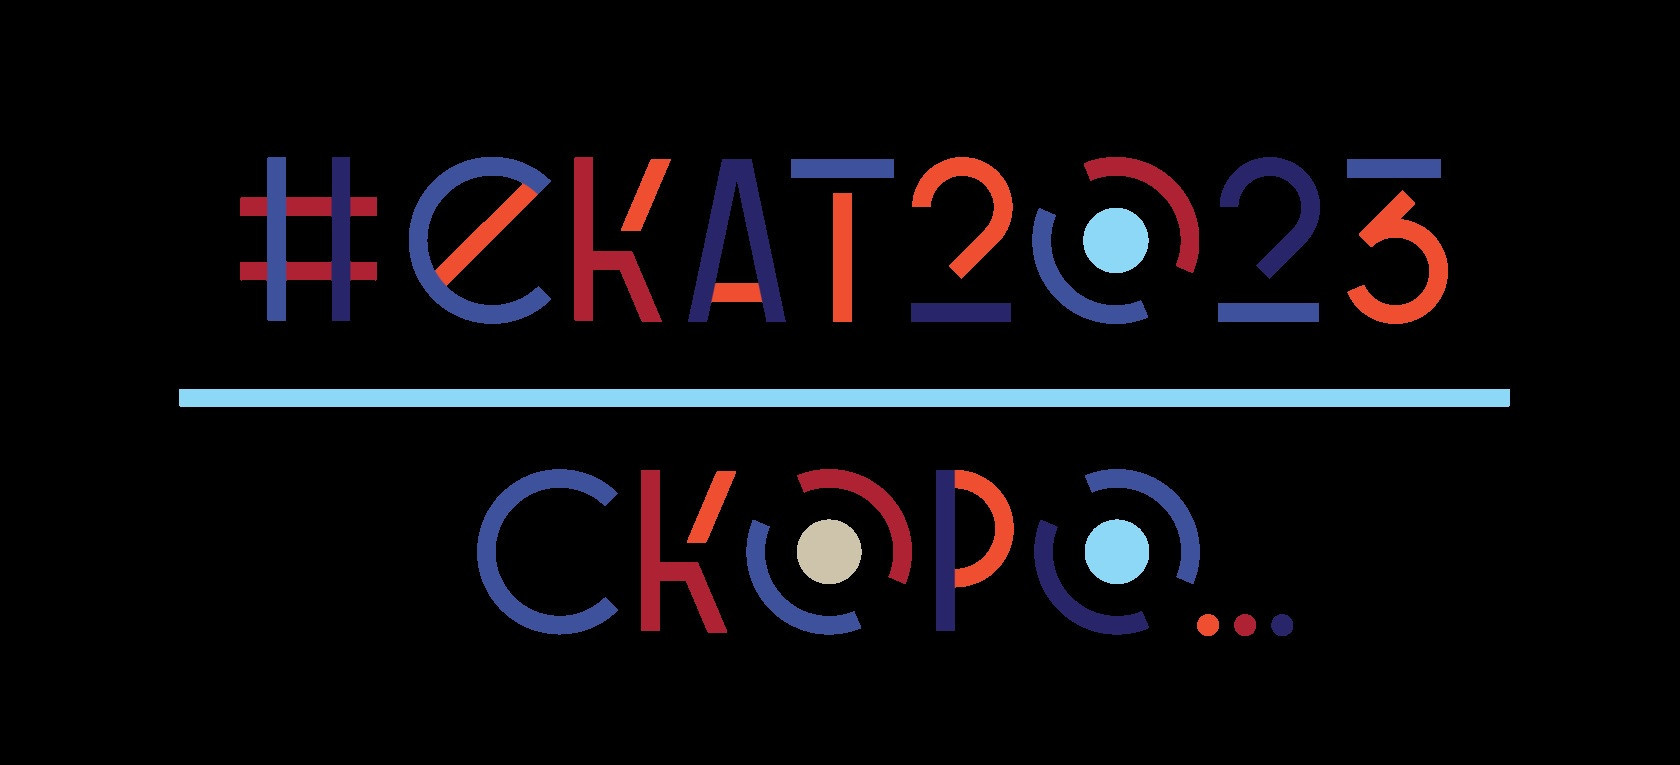 Logo and mascots chosen for Yekaterinburg 2023